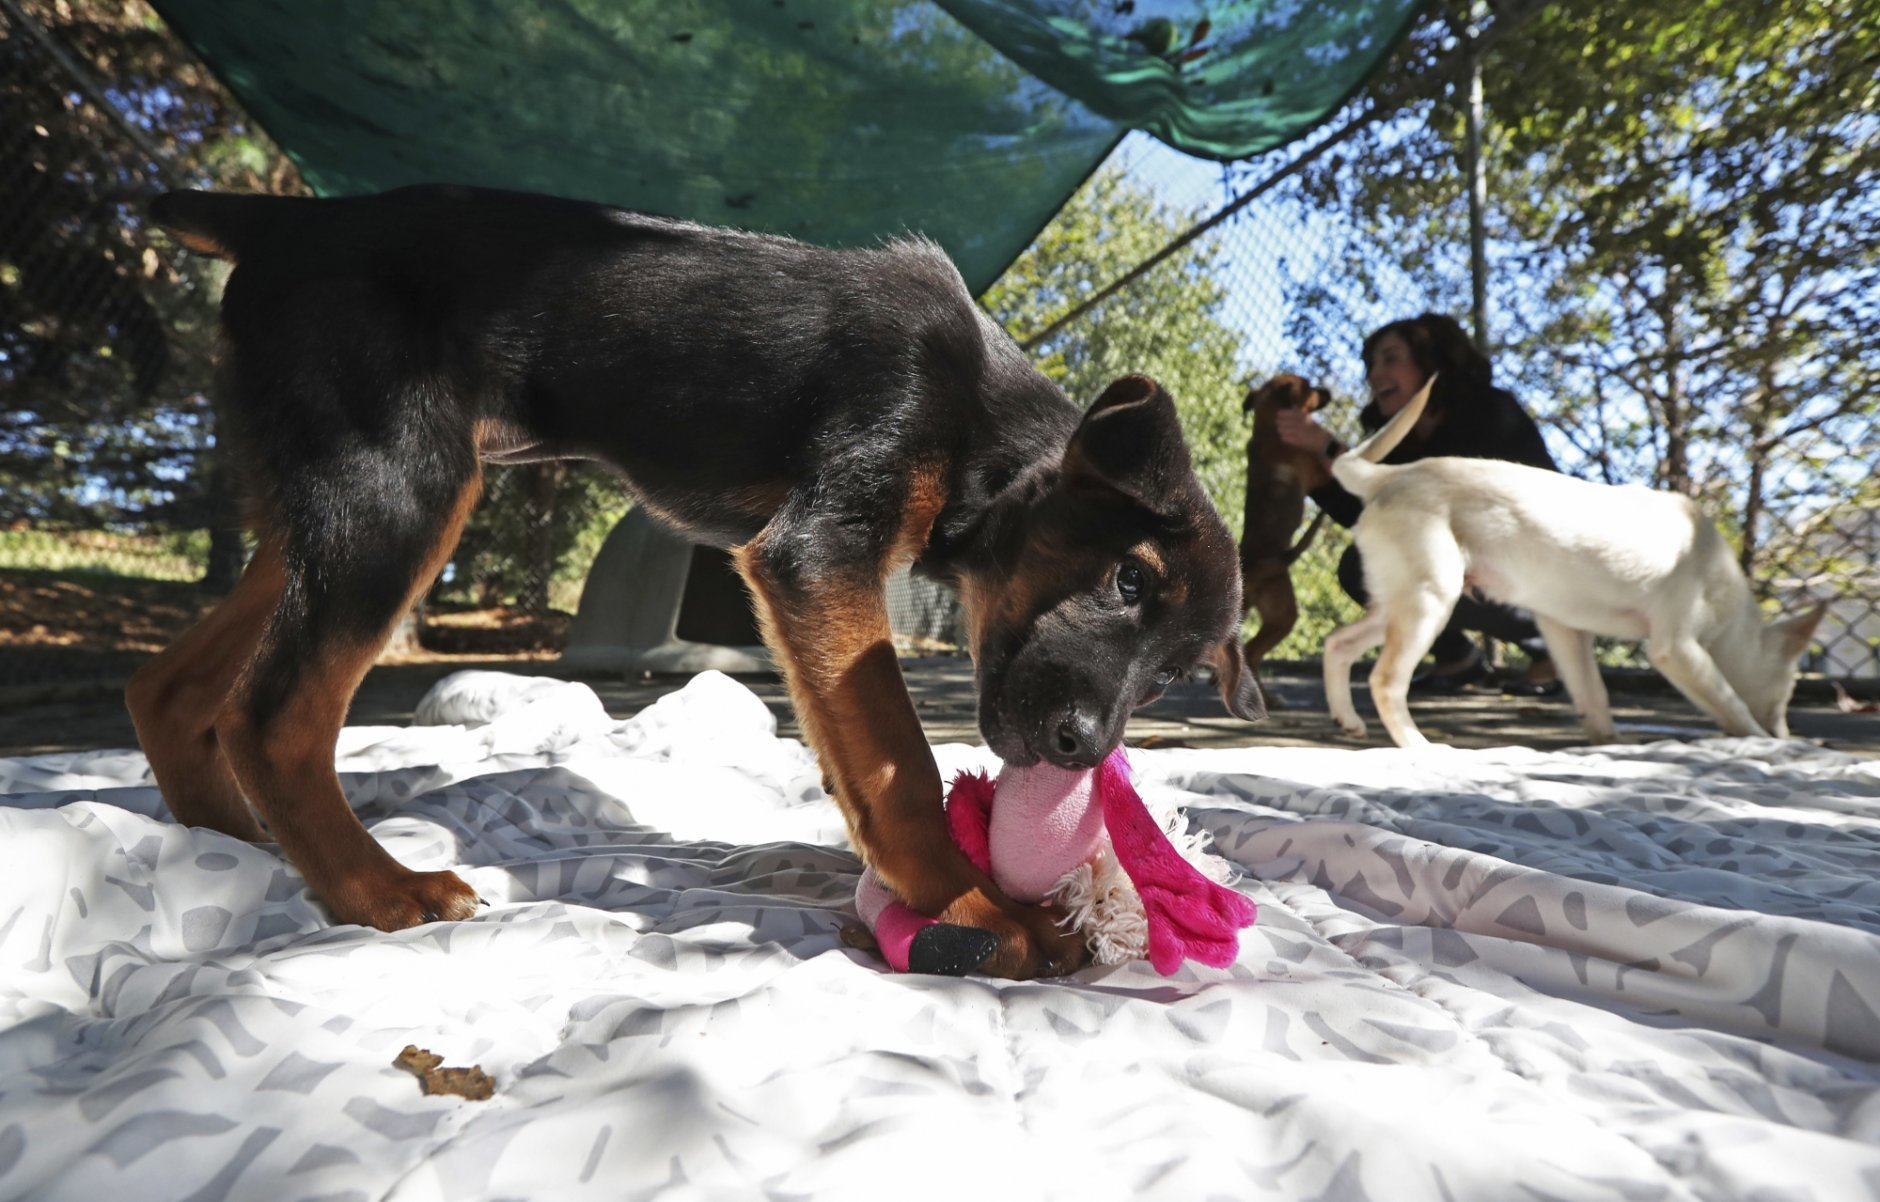 In this Friday, Oct. 12, 2018, photo, puppies play together at the Charlottesville-Albemarle SPCA in Charlottesville, Va . The puppies were rescued from a dog meat farm in South Korea by Humane Society International and are now up for adoption at the center. (Zack Wajsgras/The Daily Progress via AP)